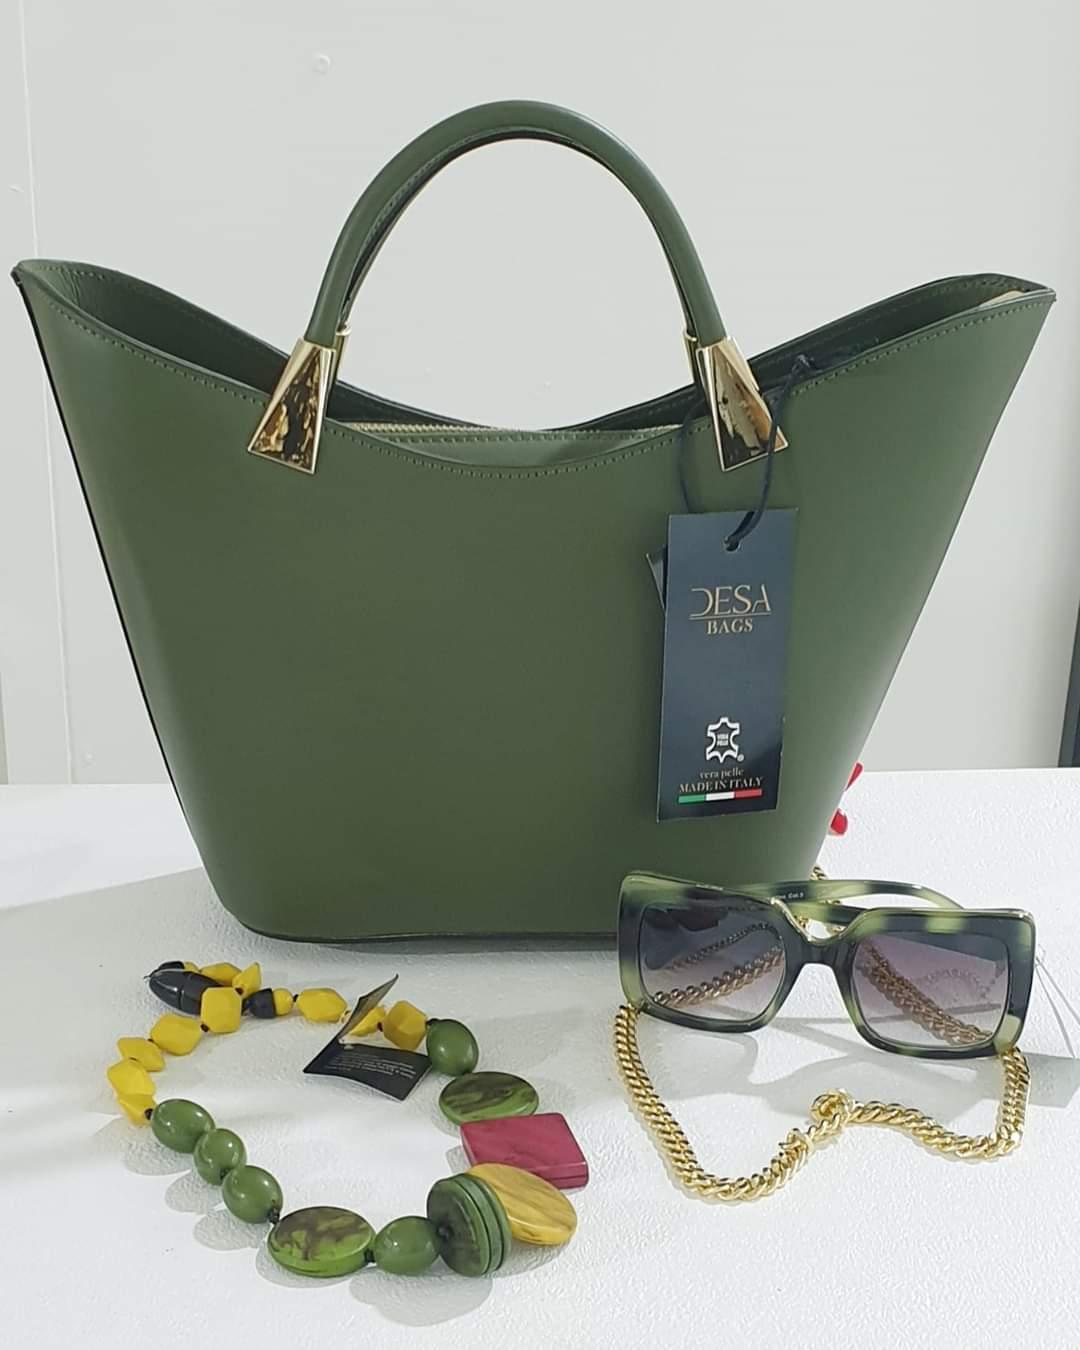 Bags and backpacks made in Italy